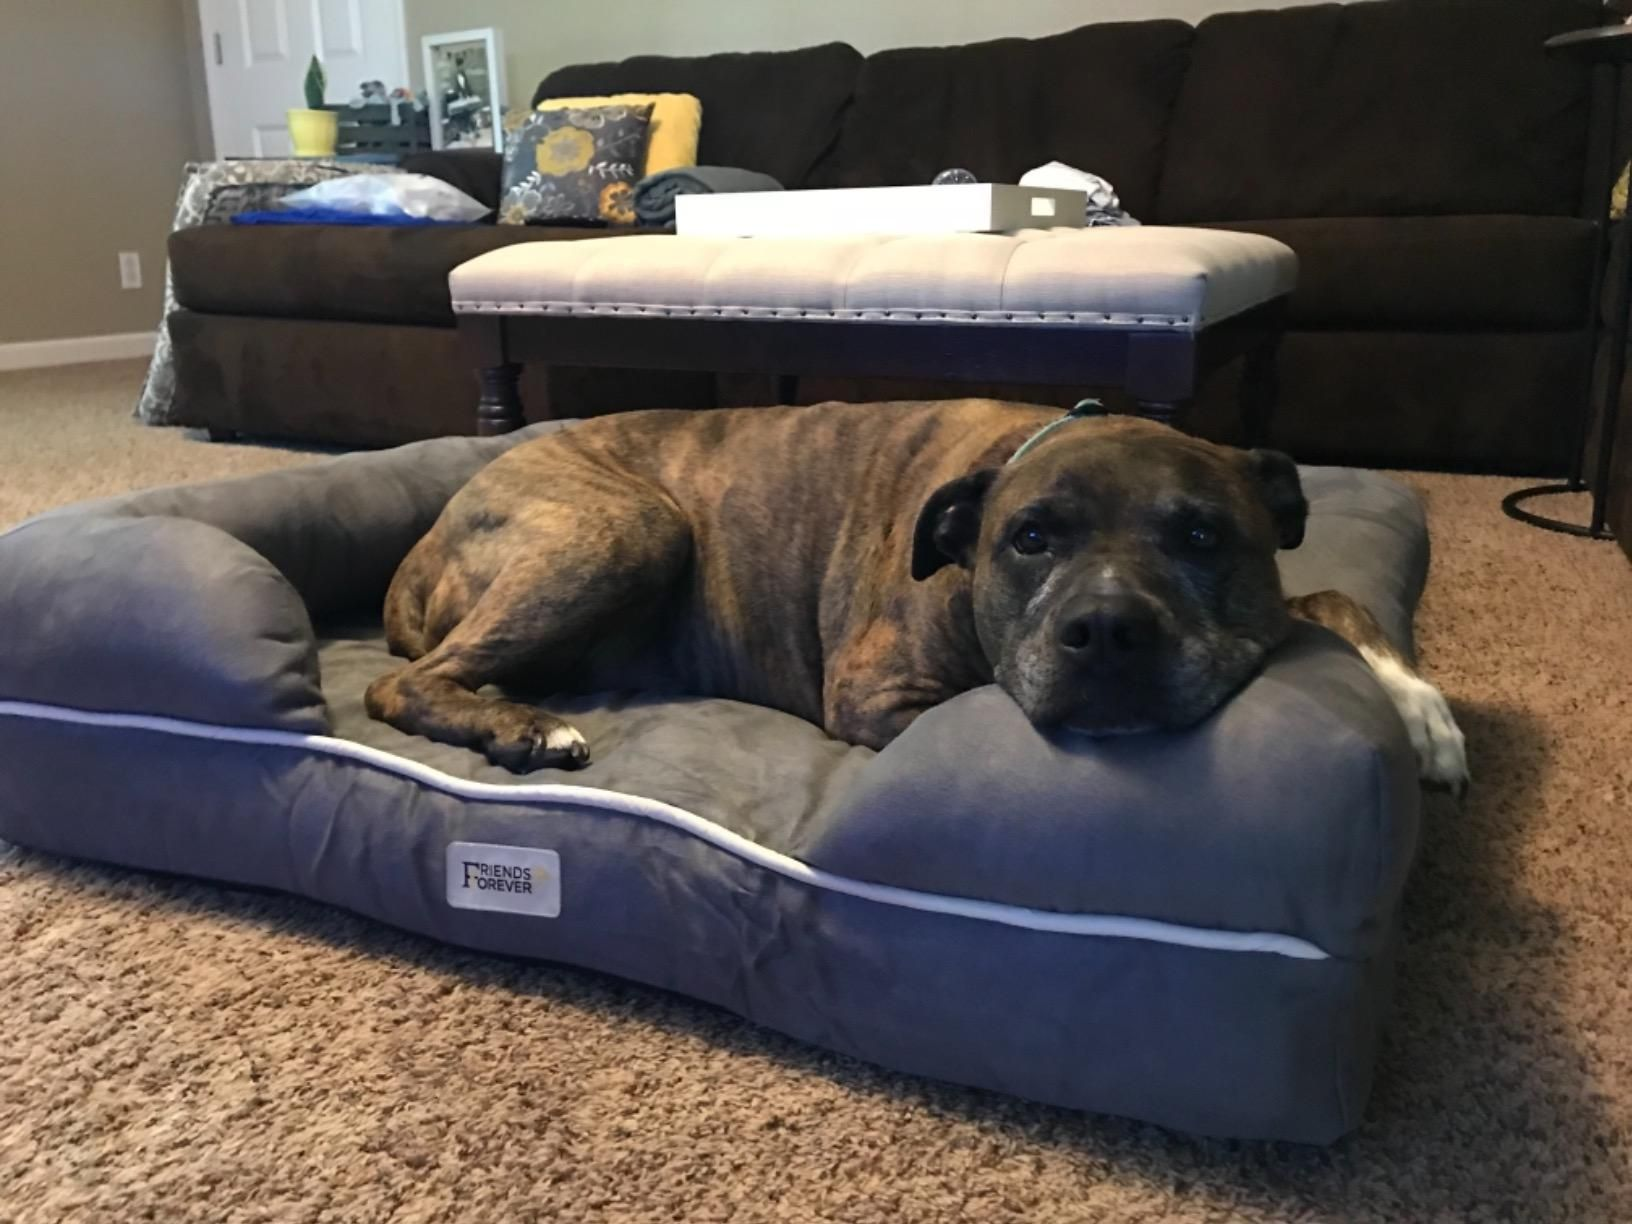 Soft Removable Cover Is Durable And Machine Washable You Can Remove The Cover Anytime With The Ykk Pure Metal Zippers And Cool Dog Beds Dog Bed Diy Dog Bed Dog beds with zipper covers